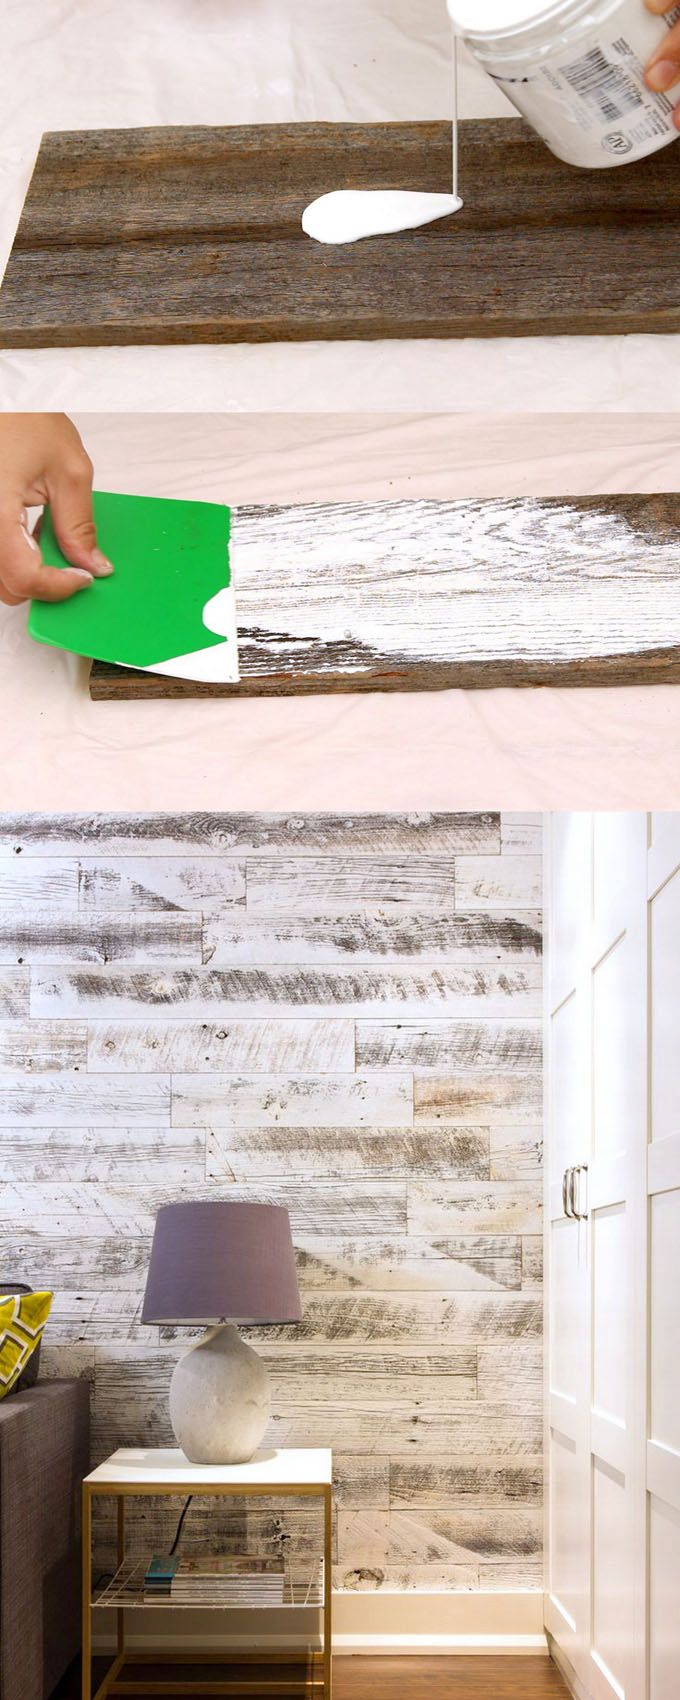 Ultimate guide + video tutorials on how to whitewash wood & create beautiful whitewashed floors, walls and furniture using pine, pallet or reclaimed wood. | Trabajos de pintura y reformas en general. Pintura y reformas residencial y comercial https://malagapintores.net/ Reformas Baños - Pintura- Fontanería. Colocación puertas correderas. #Reformas #baños #pintura #fontanería #pintores_malaga #pintor #Bathroom renovations #Residential painting